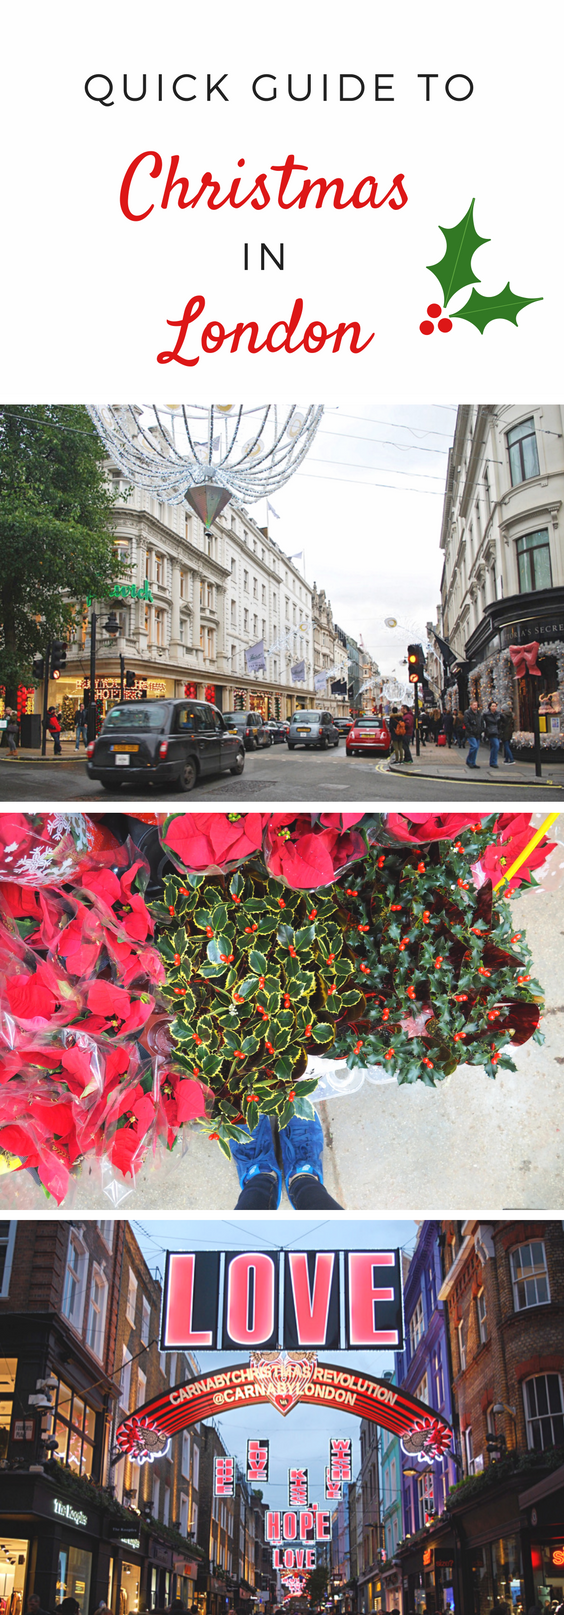 A local's tips for having a very festive time in London at Christmas.